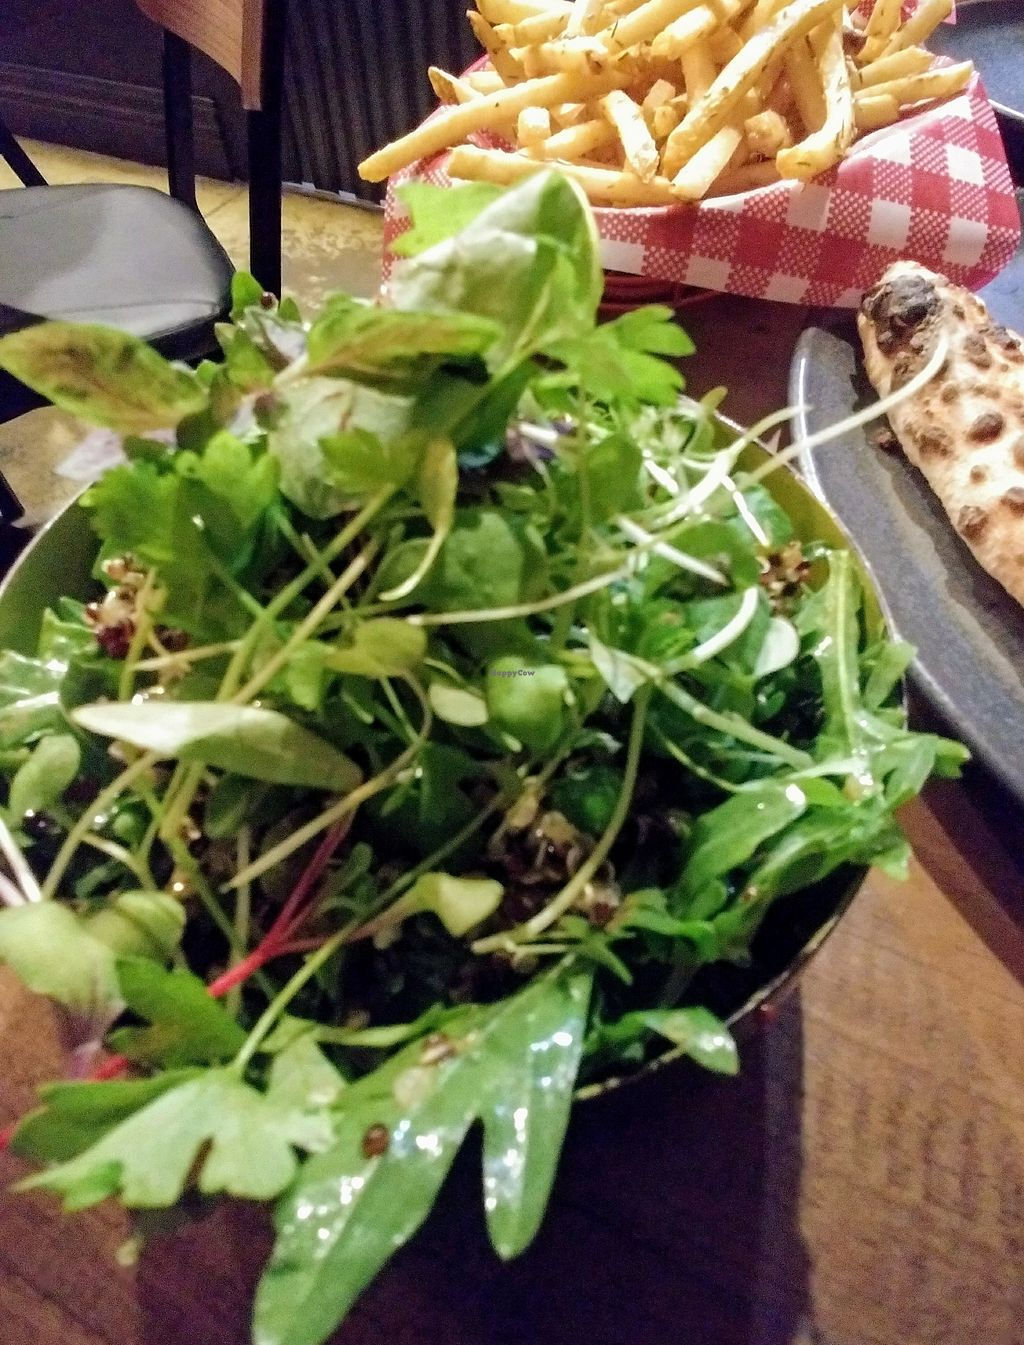 """Photo of Red Sparrow Pizza  by <a href=""""/members/profile/karlaess"""">karlaess</a> <br/>Quinoa salad <br/> March 31, 2018  - <a href='/contact/abuse/image/84855/378588'>Report</a>"""